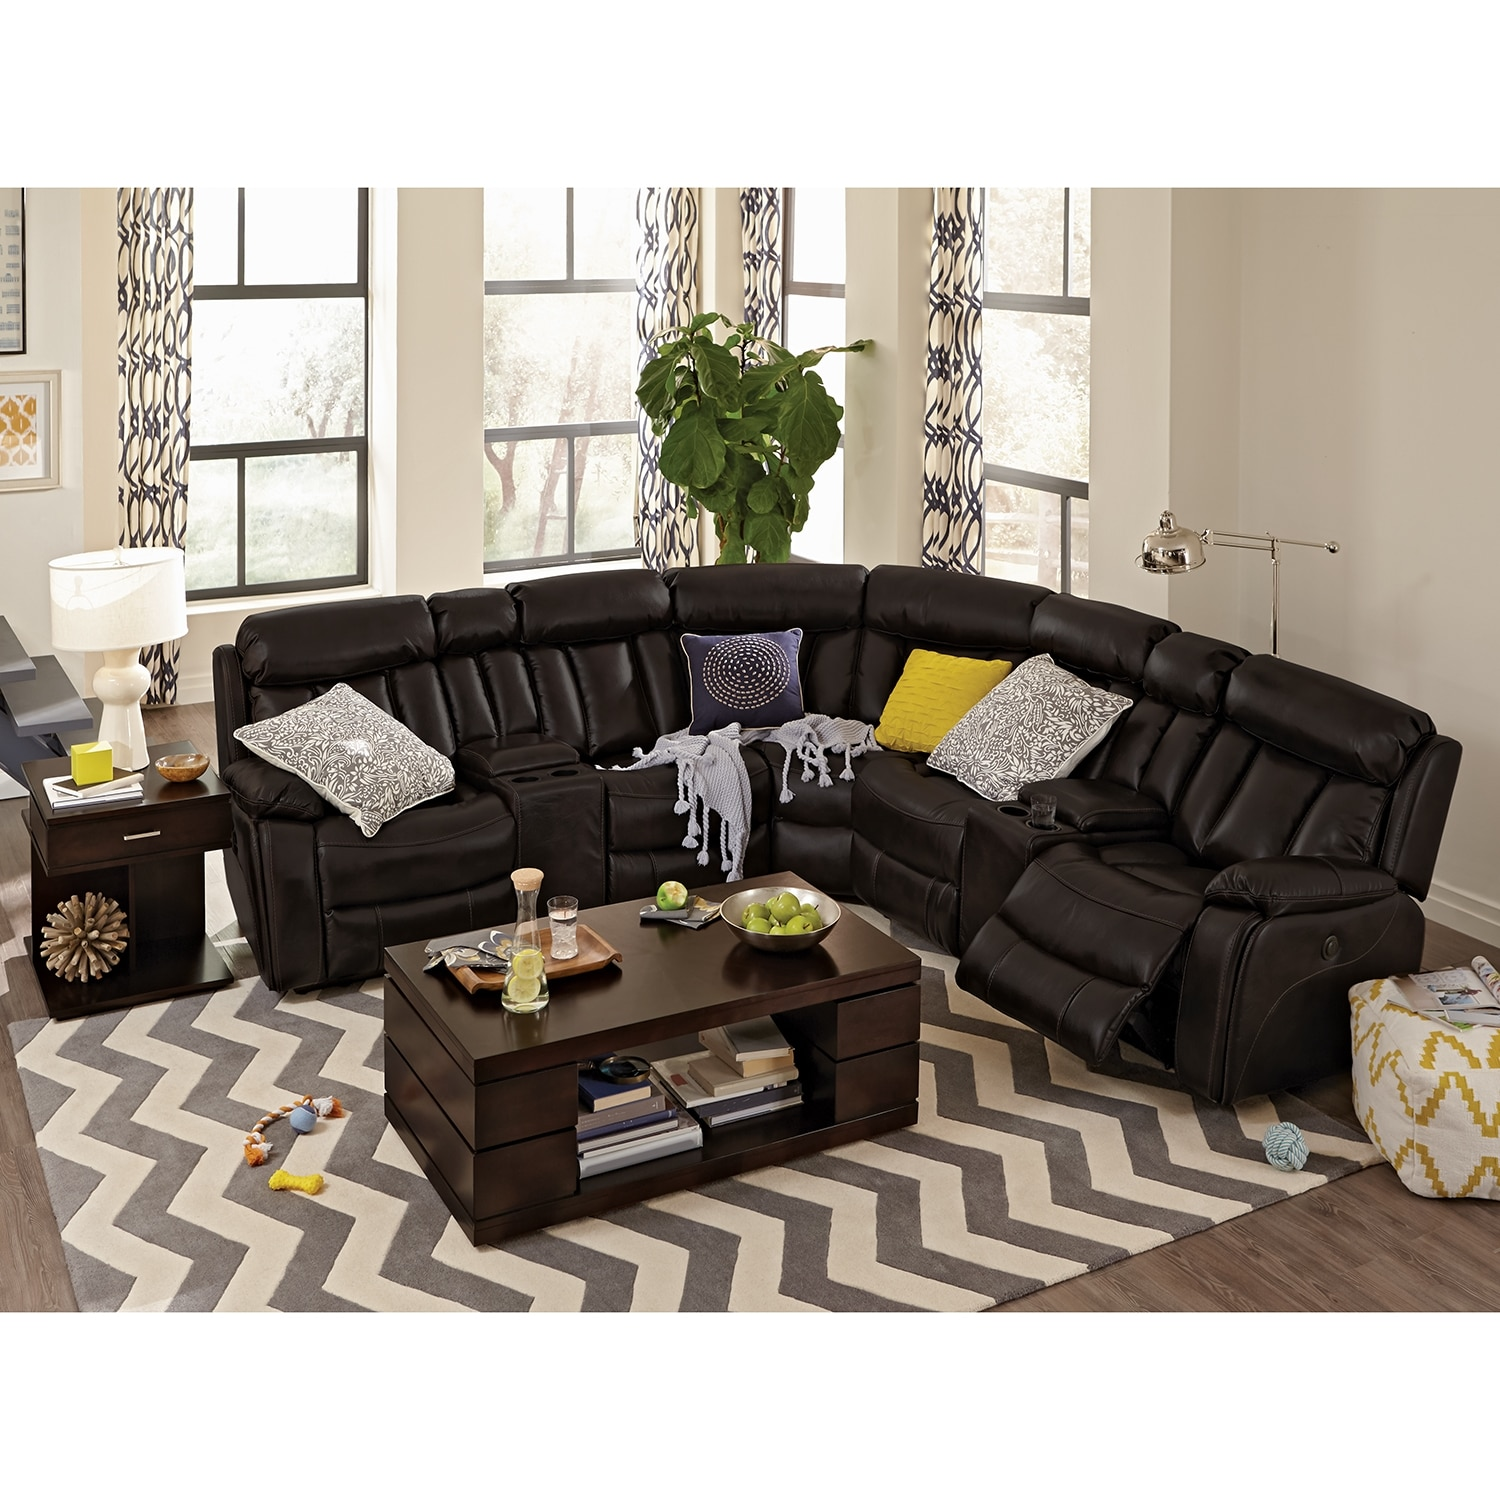 Walnut Furniture Living Room Diablo 7 Piece Power Reclining Sectional With Armless Power Chair